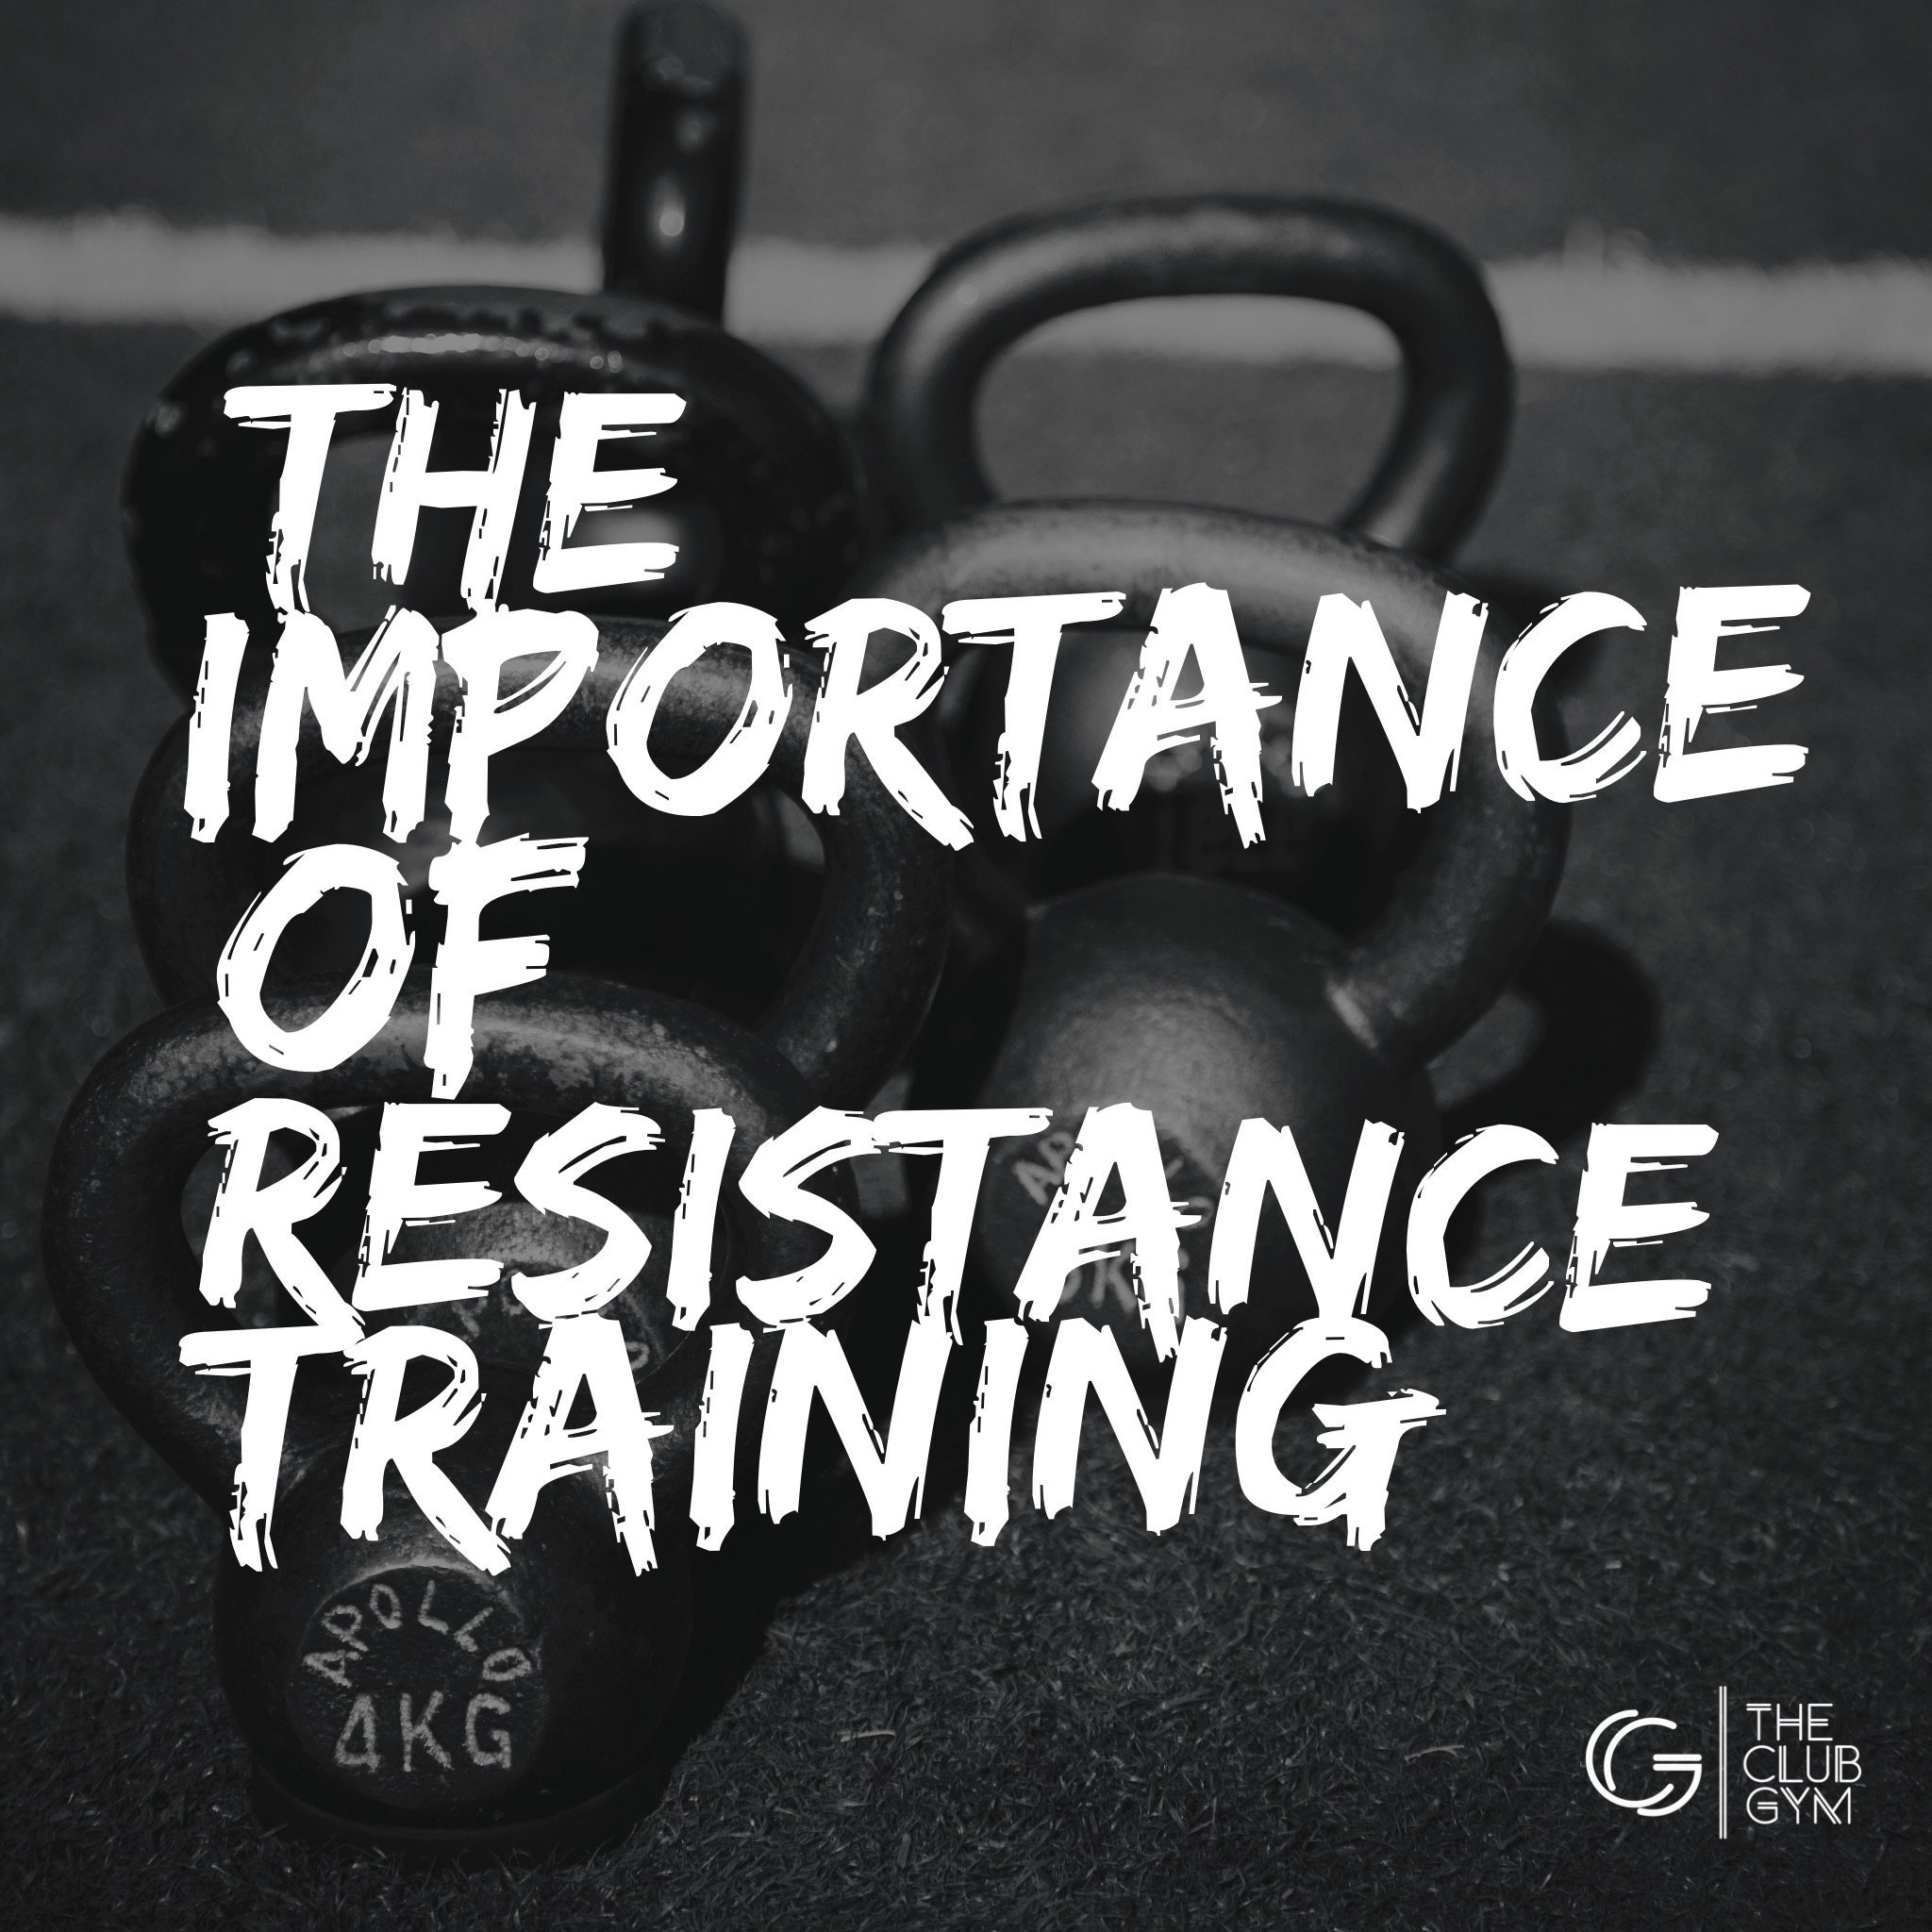 Importance of resistance training